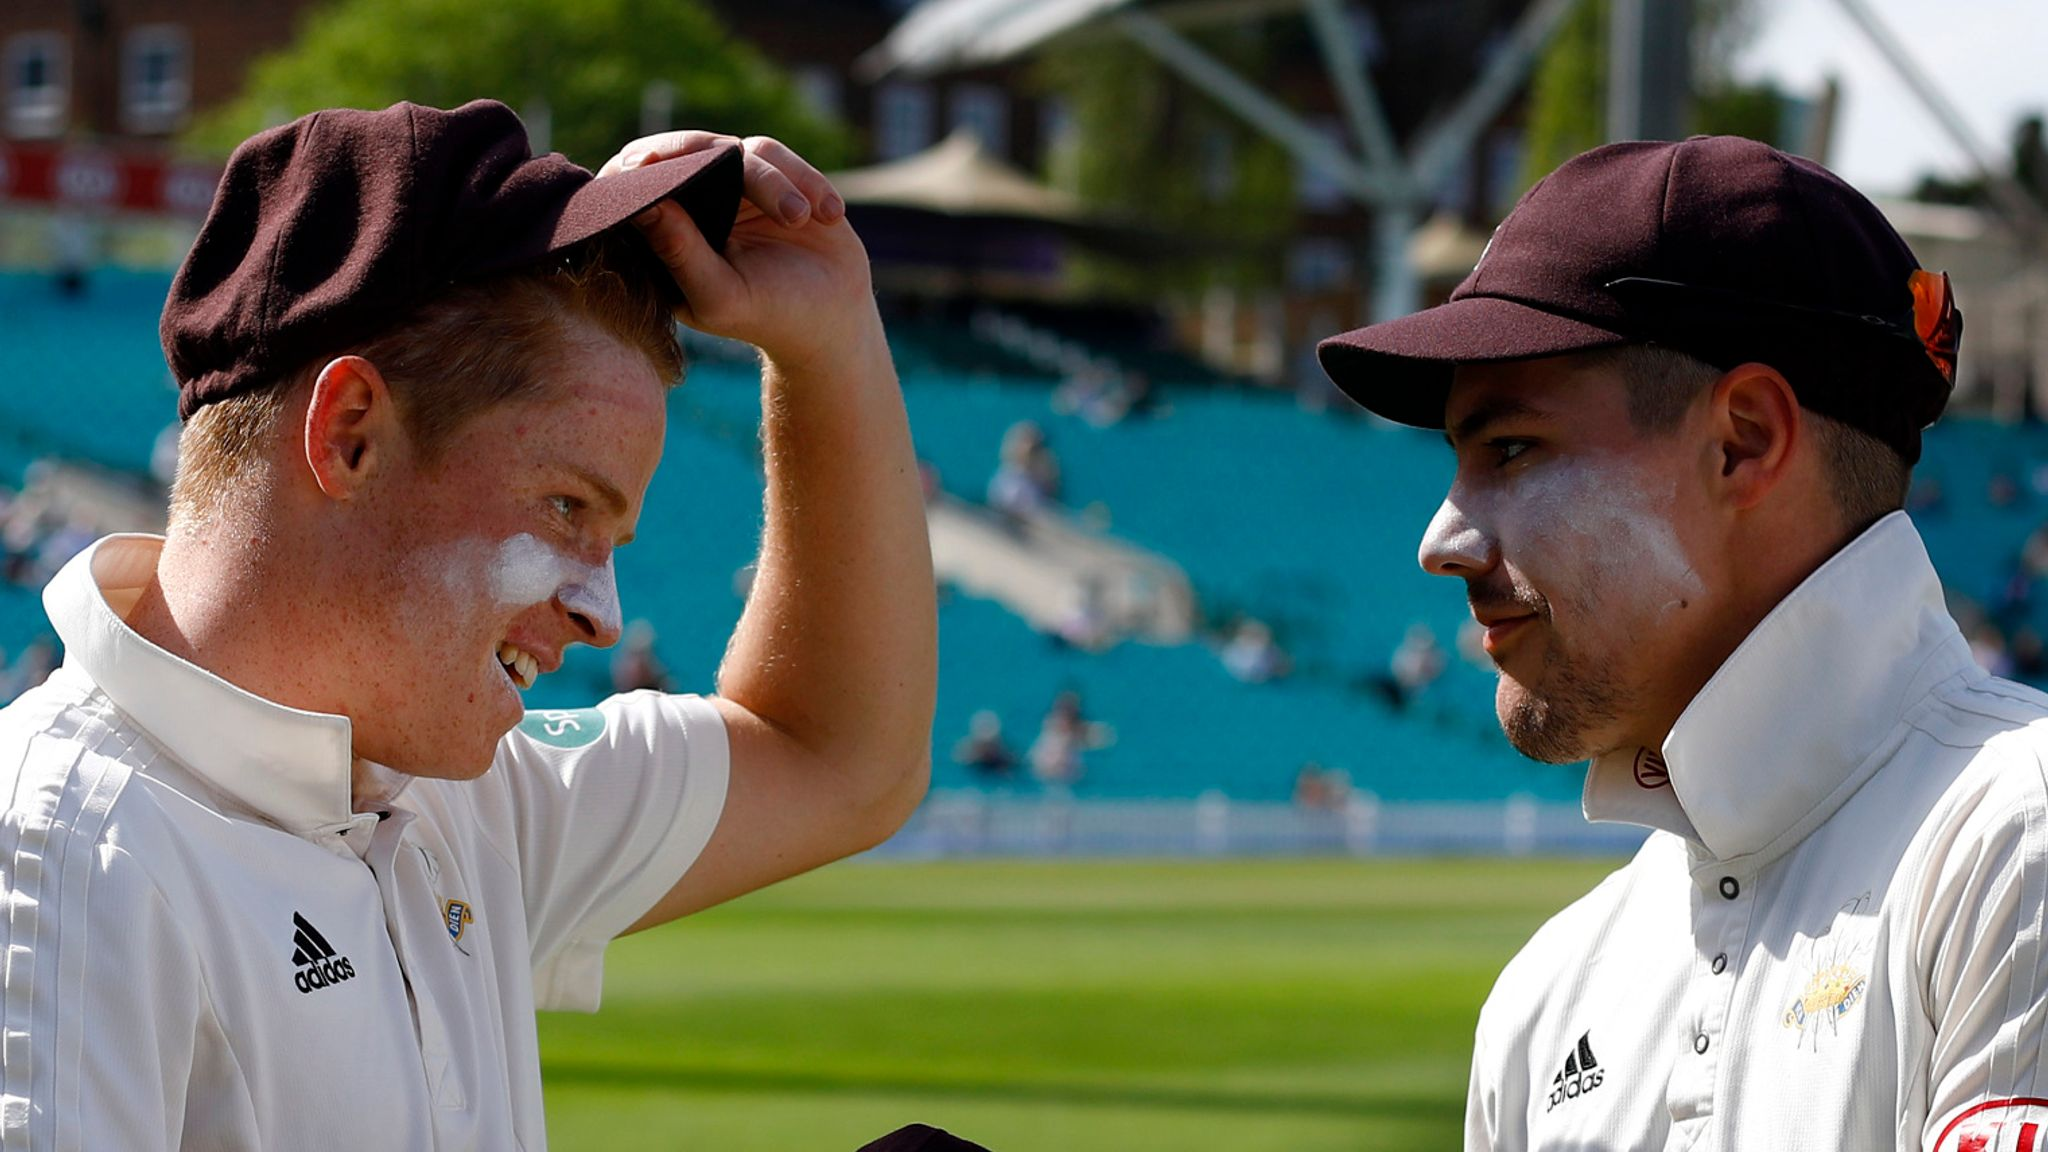 Rory Burns and Ollie Pope extend Surrey contracts until 2023